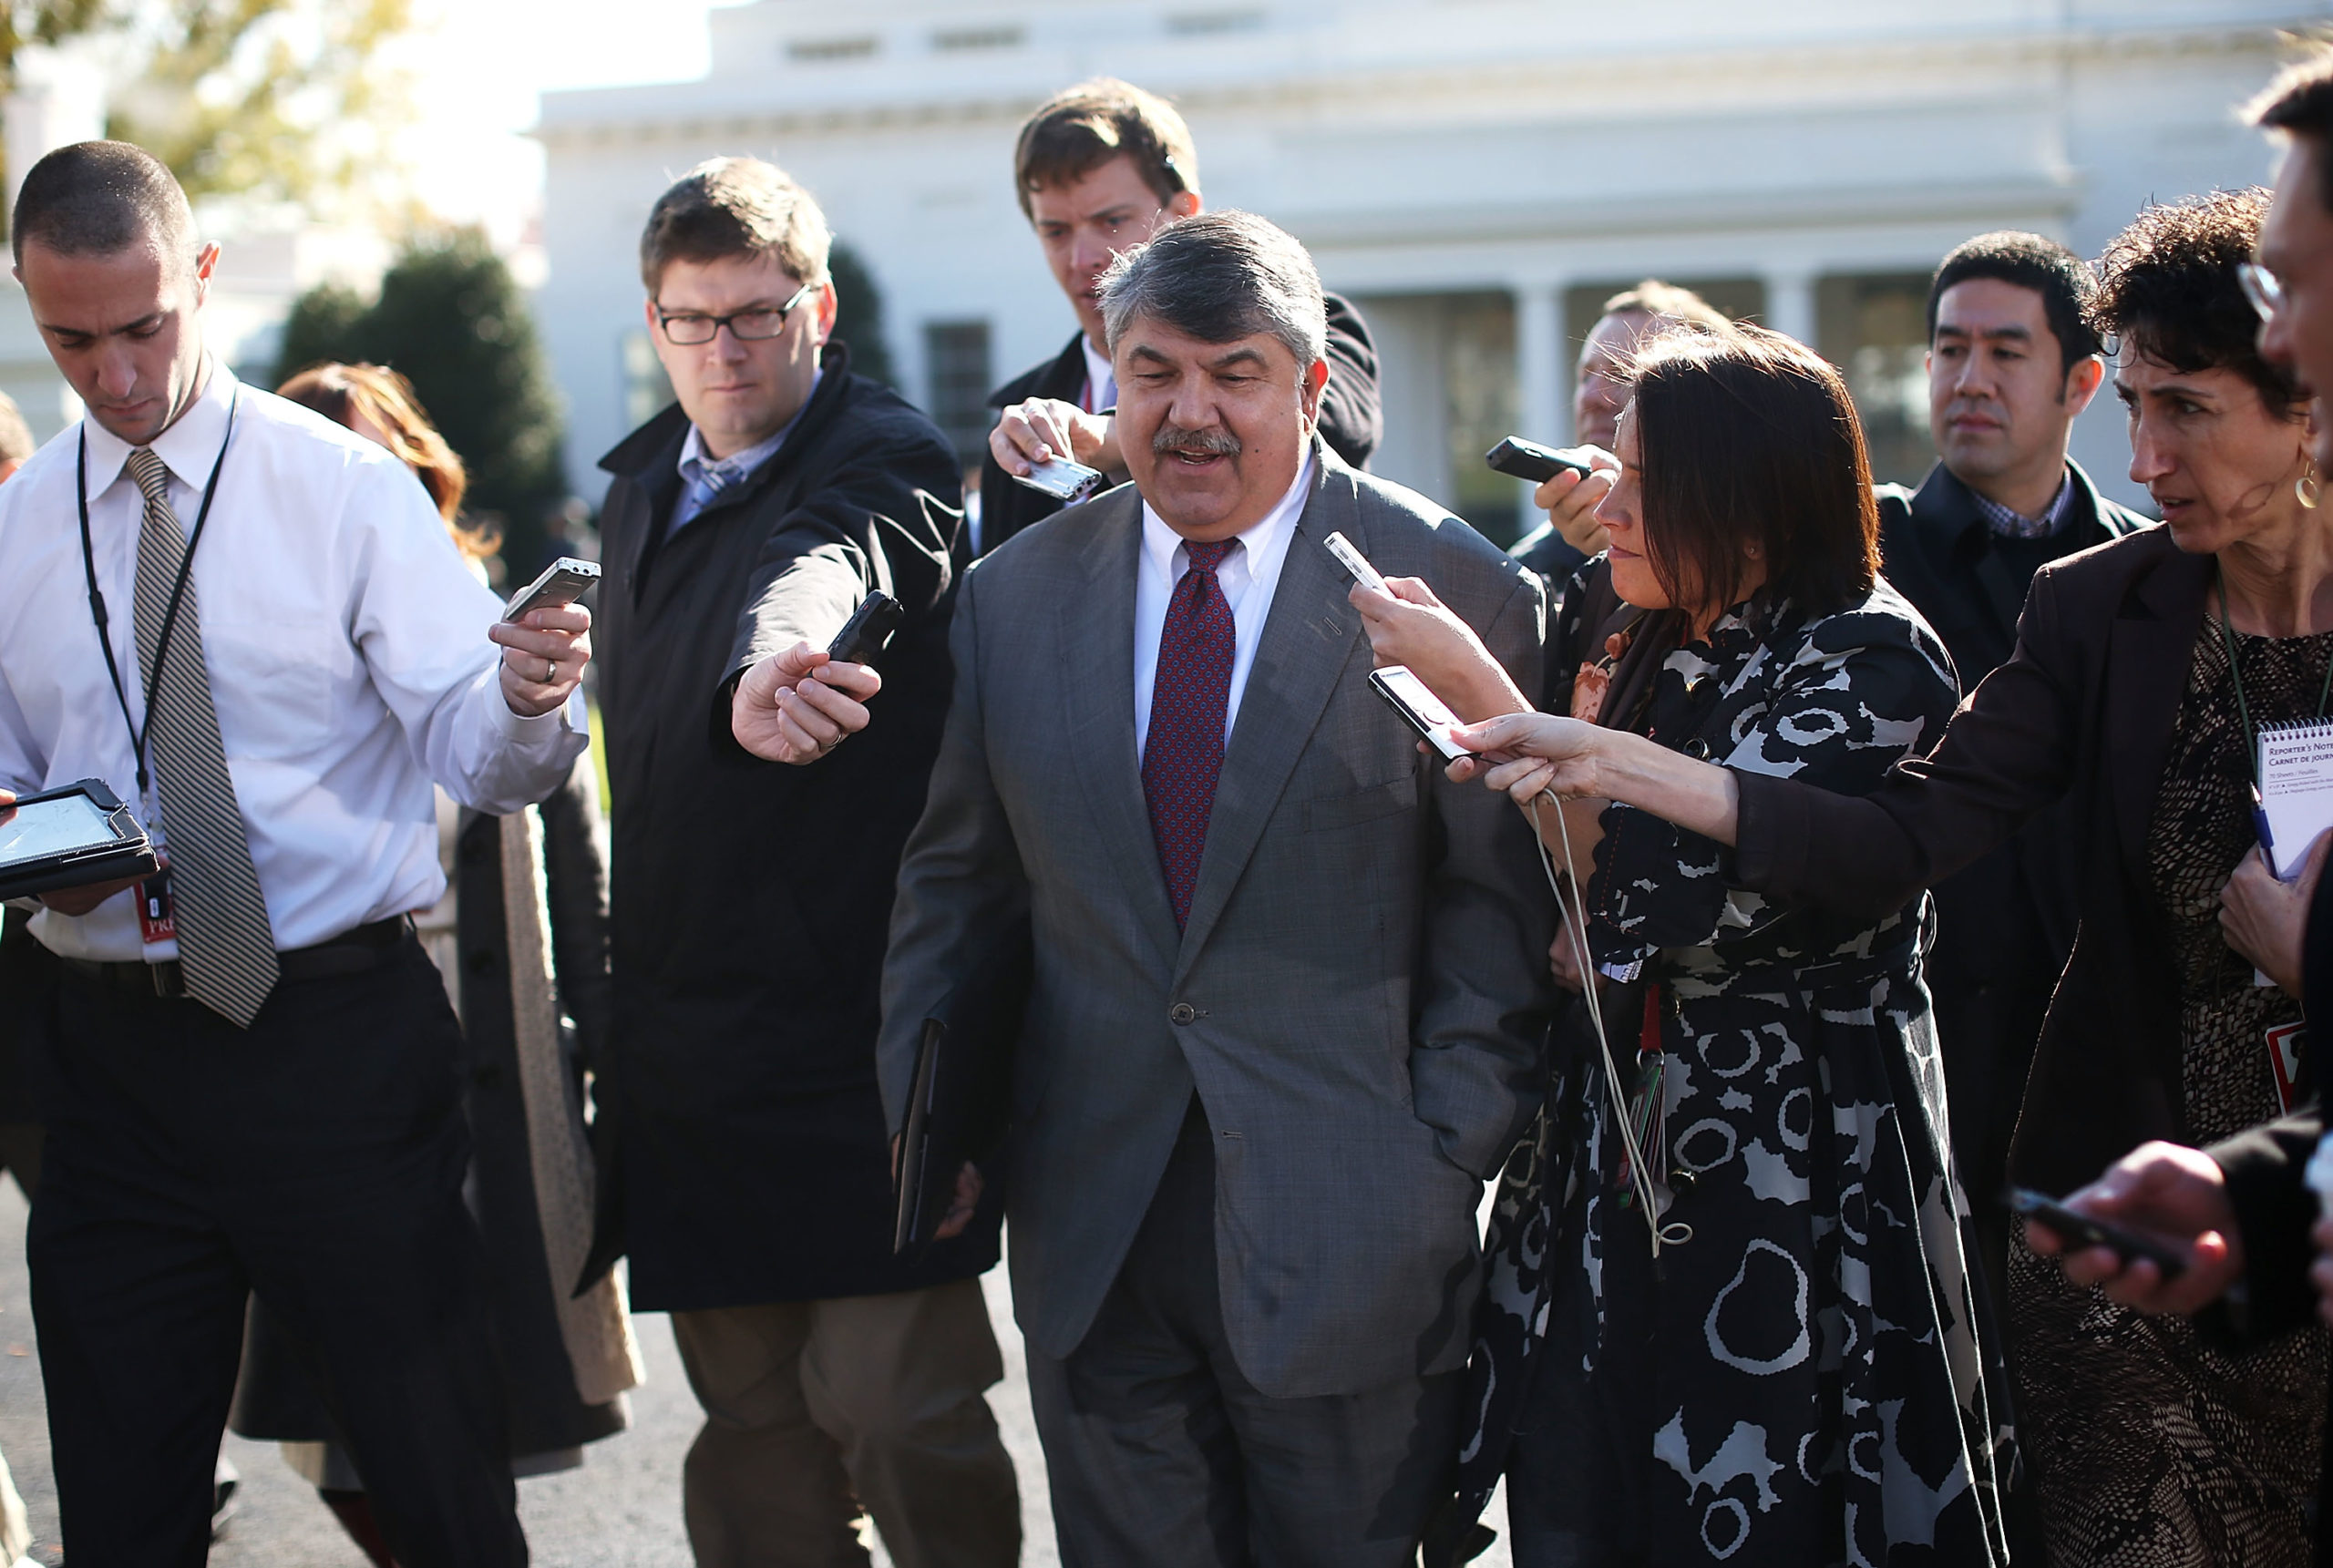 AFL-CIO President Richard Trumka and other labor leaders speak after a meeting with former President Barack Obama in 2012. (Alex Wong/Getty Images)